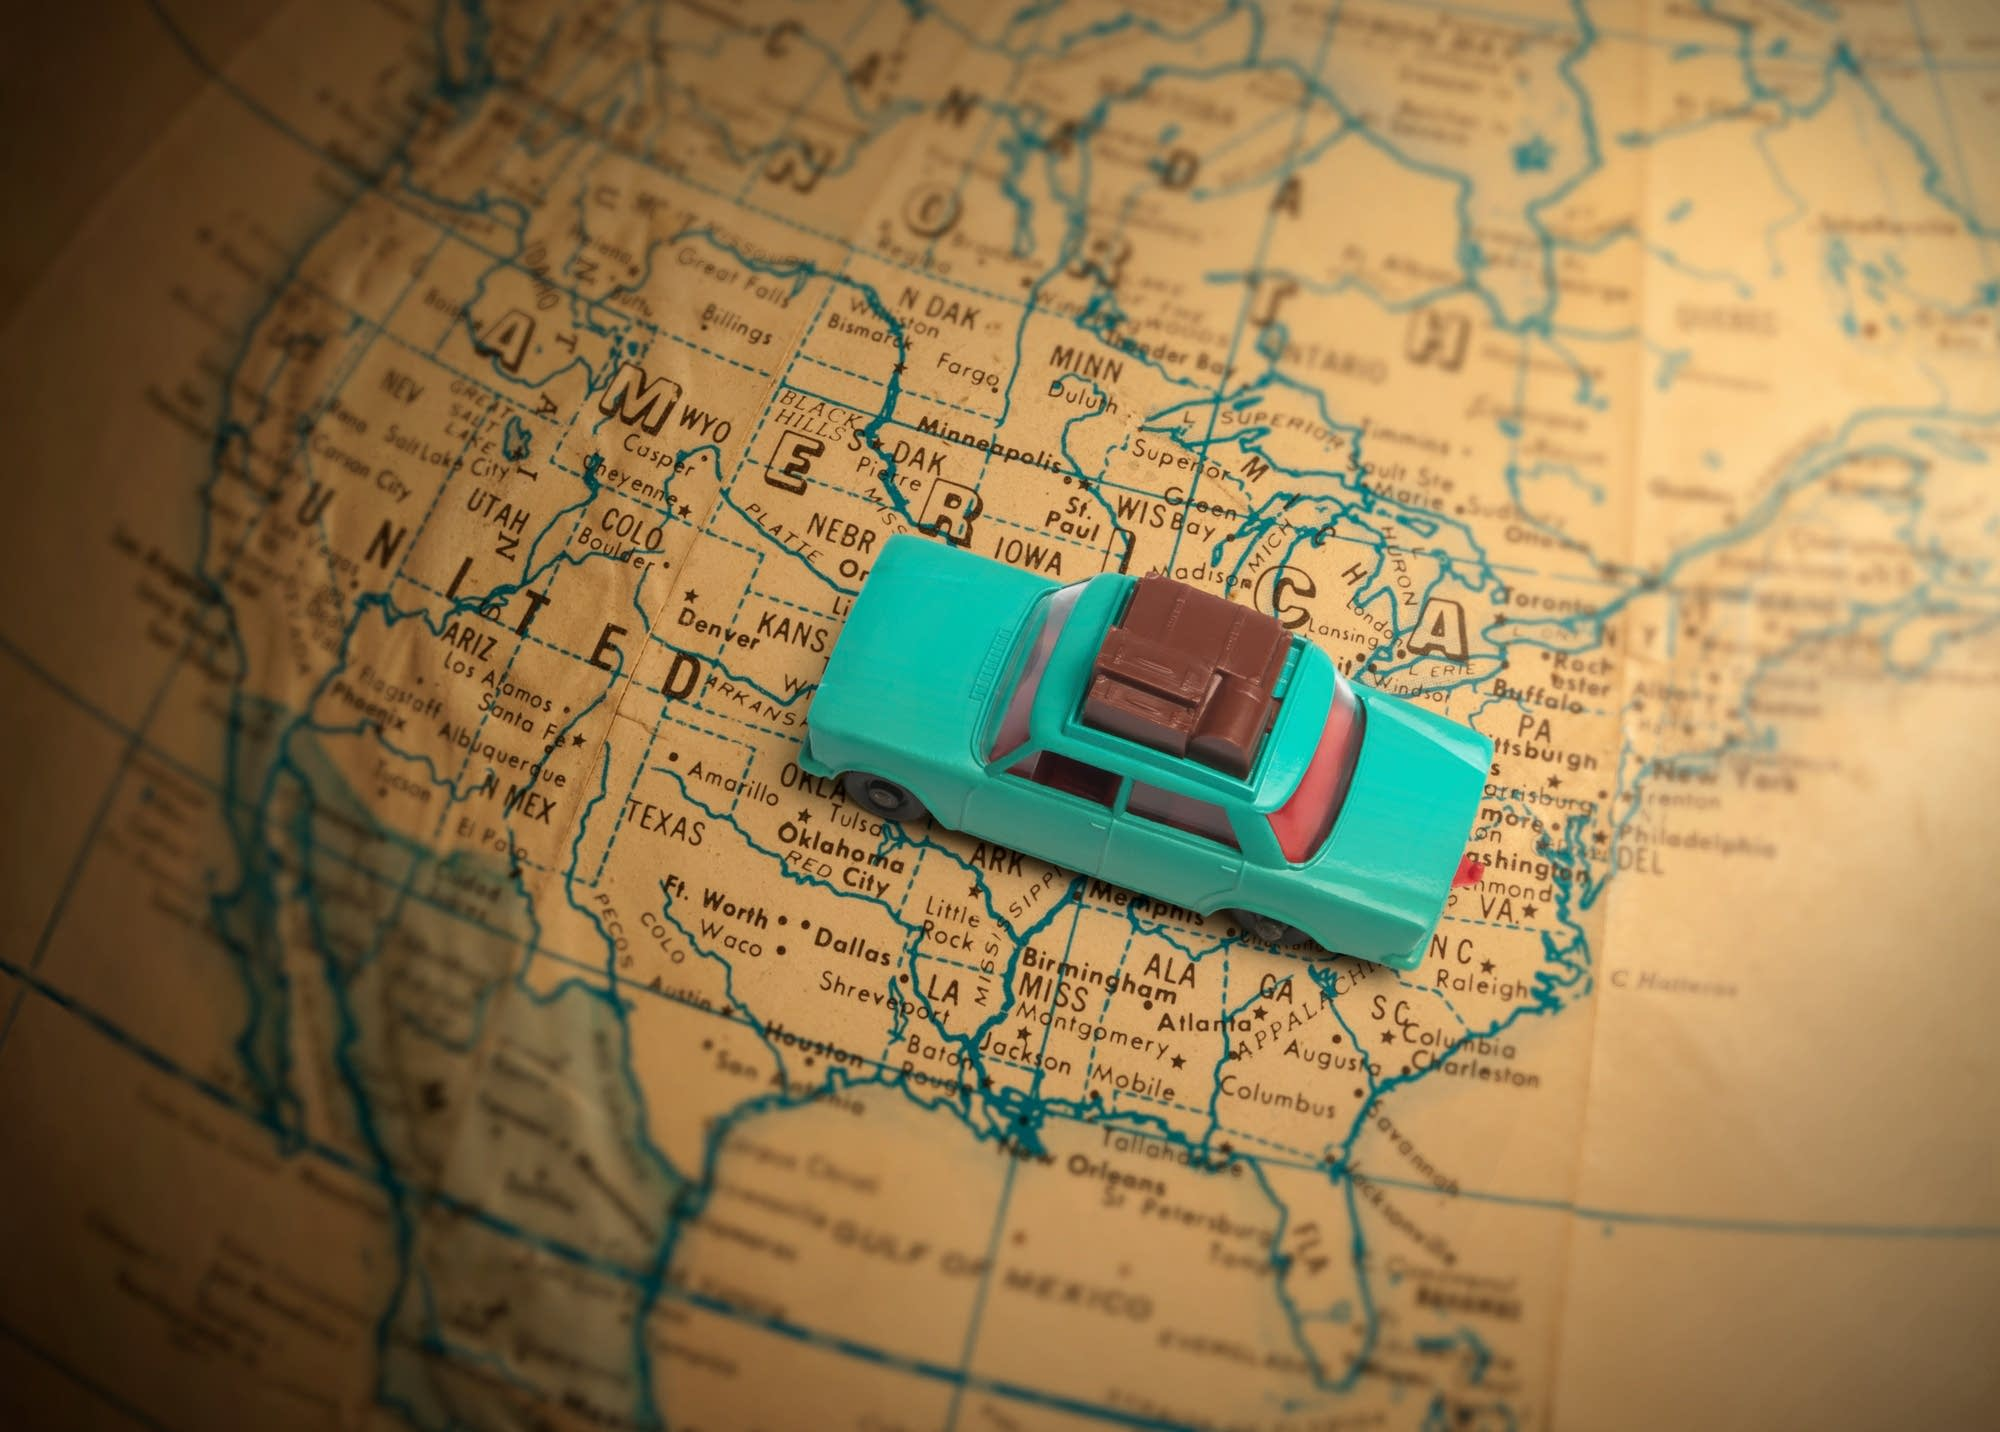 Globetrotting toy car vacation